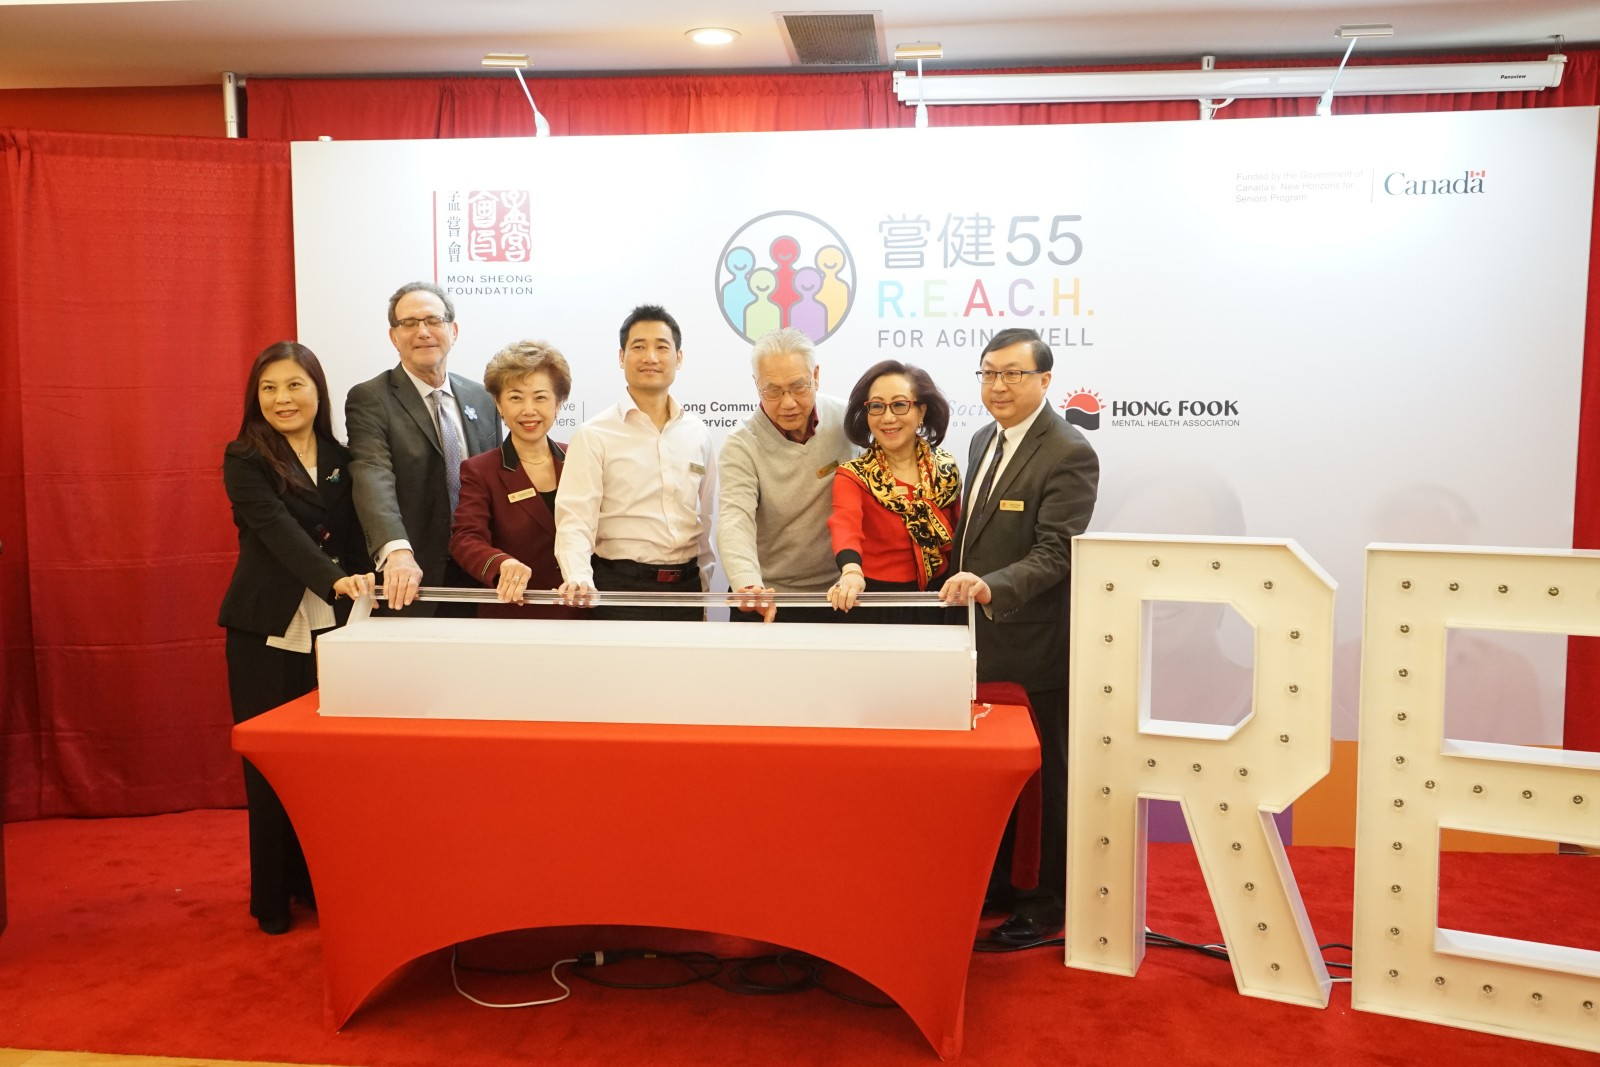 Mon Sheong Foundation was honoured to kick-off the R.E.A.C.H. for Aging Well project with collaborative partners